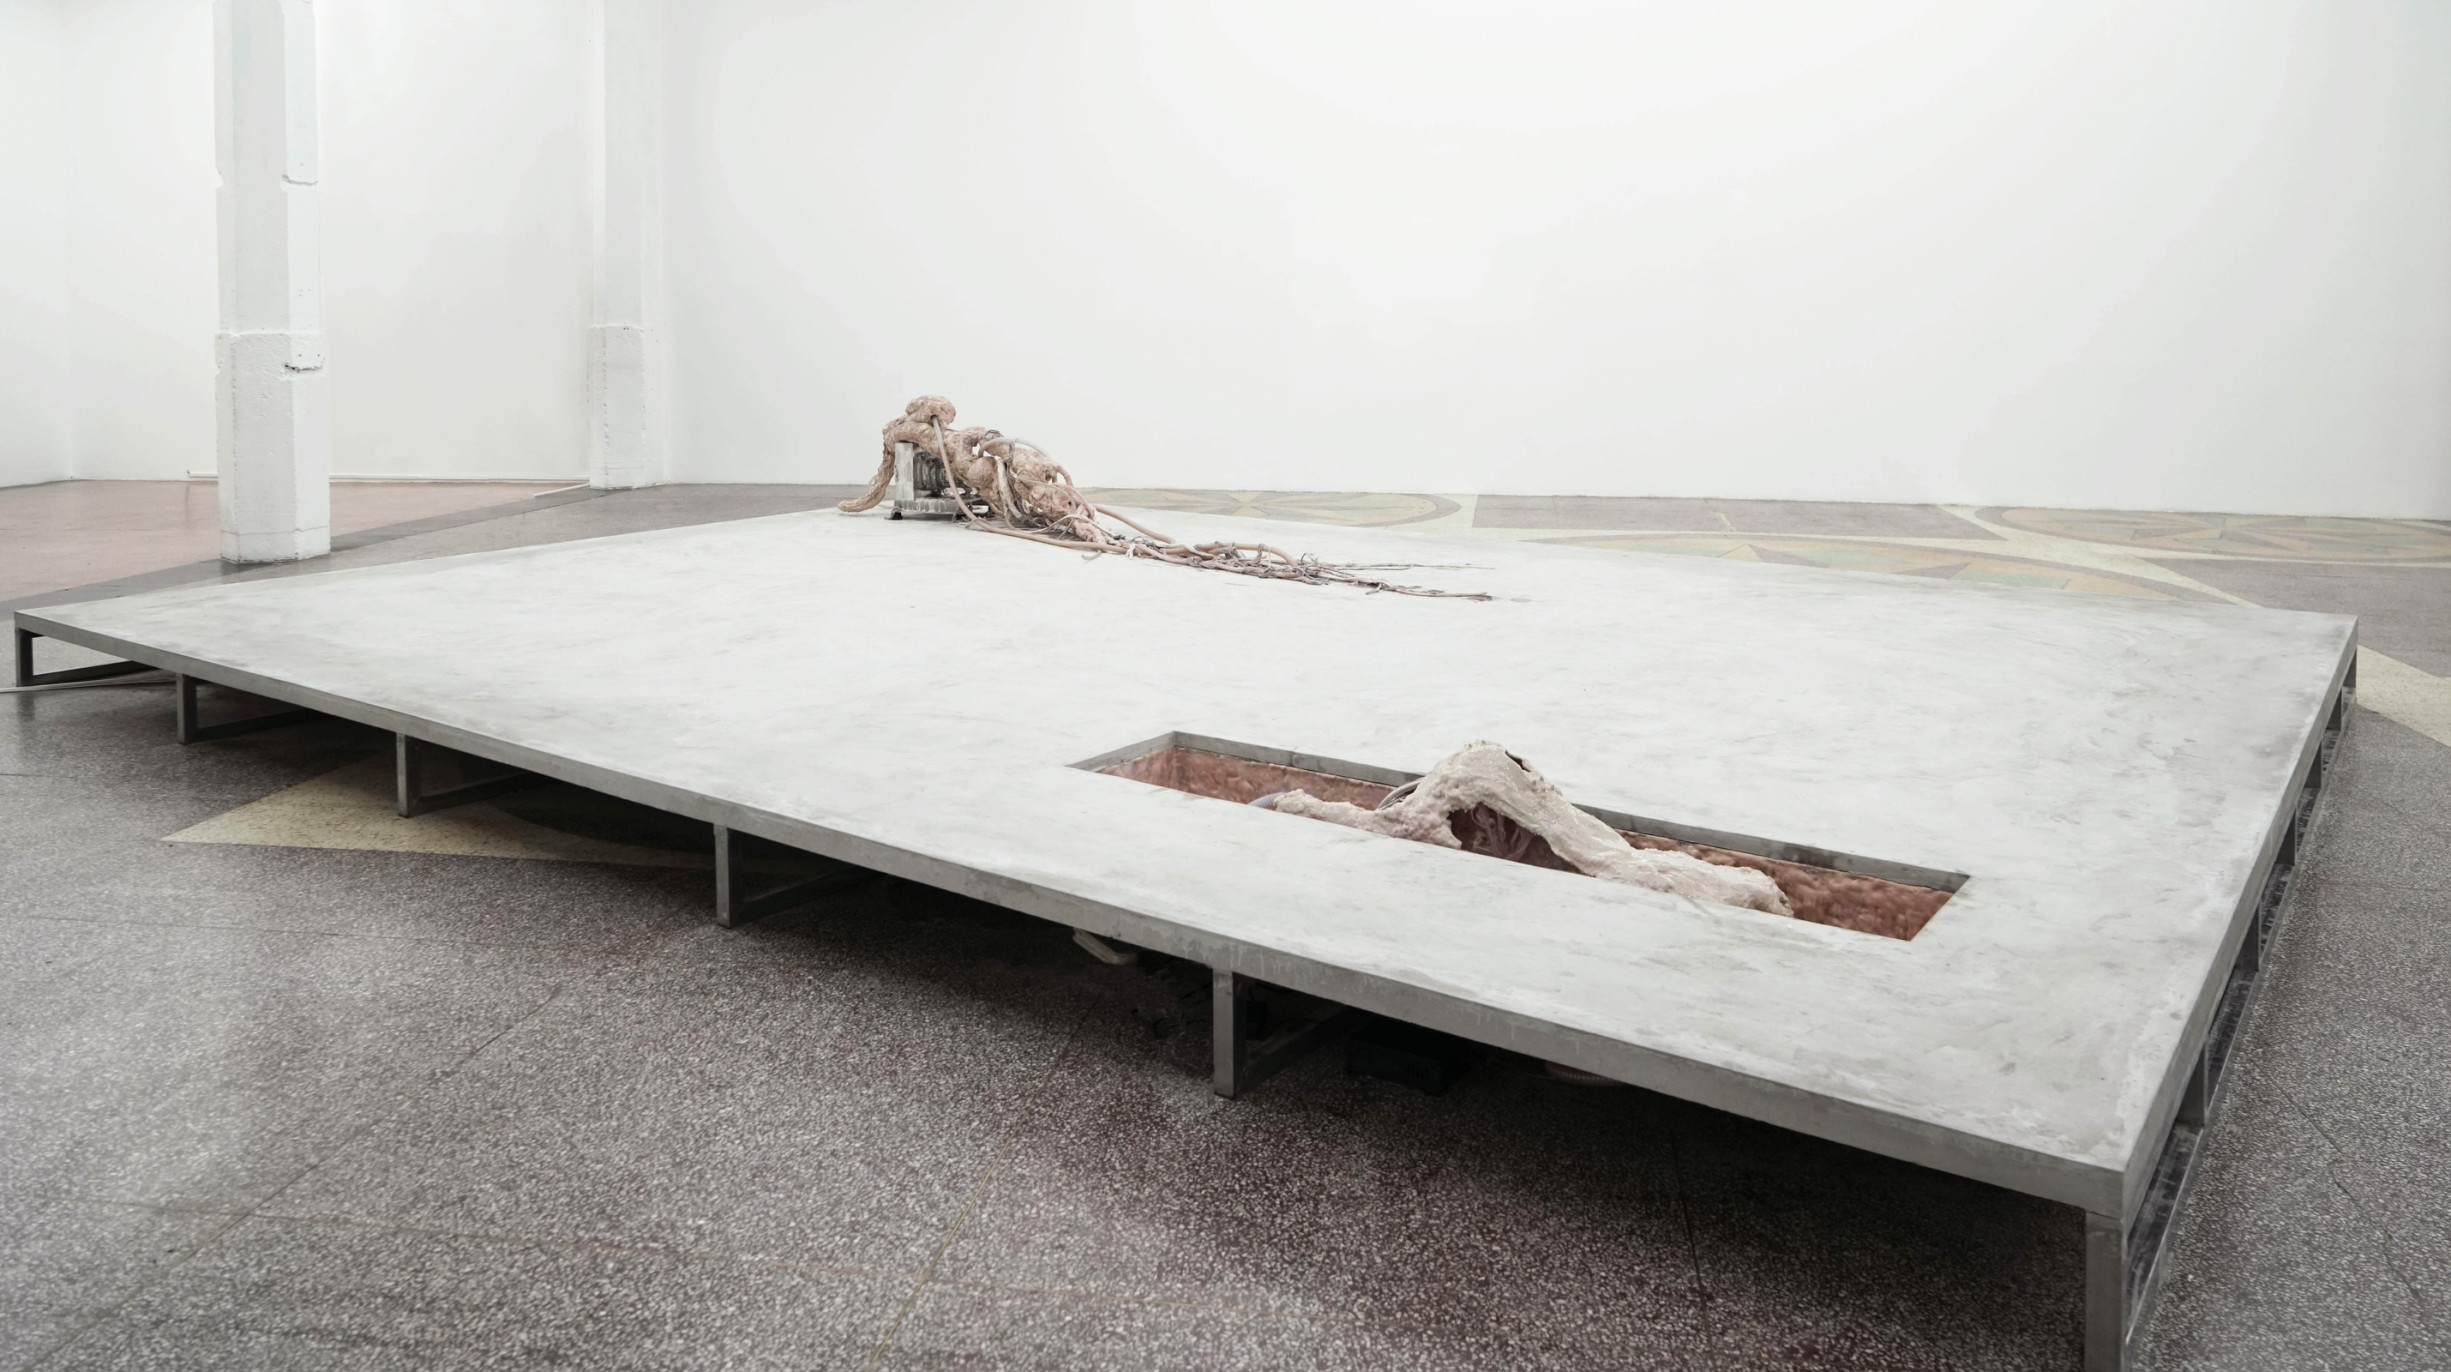 Mire Lee, Horizontal Forms, 2020.